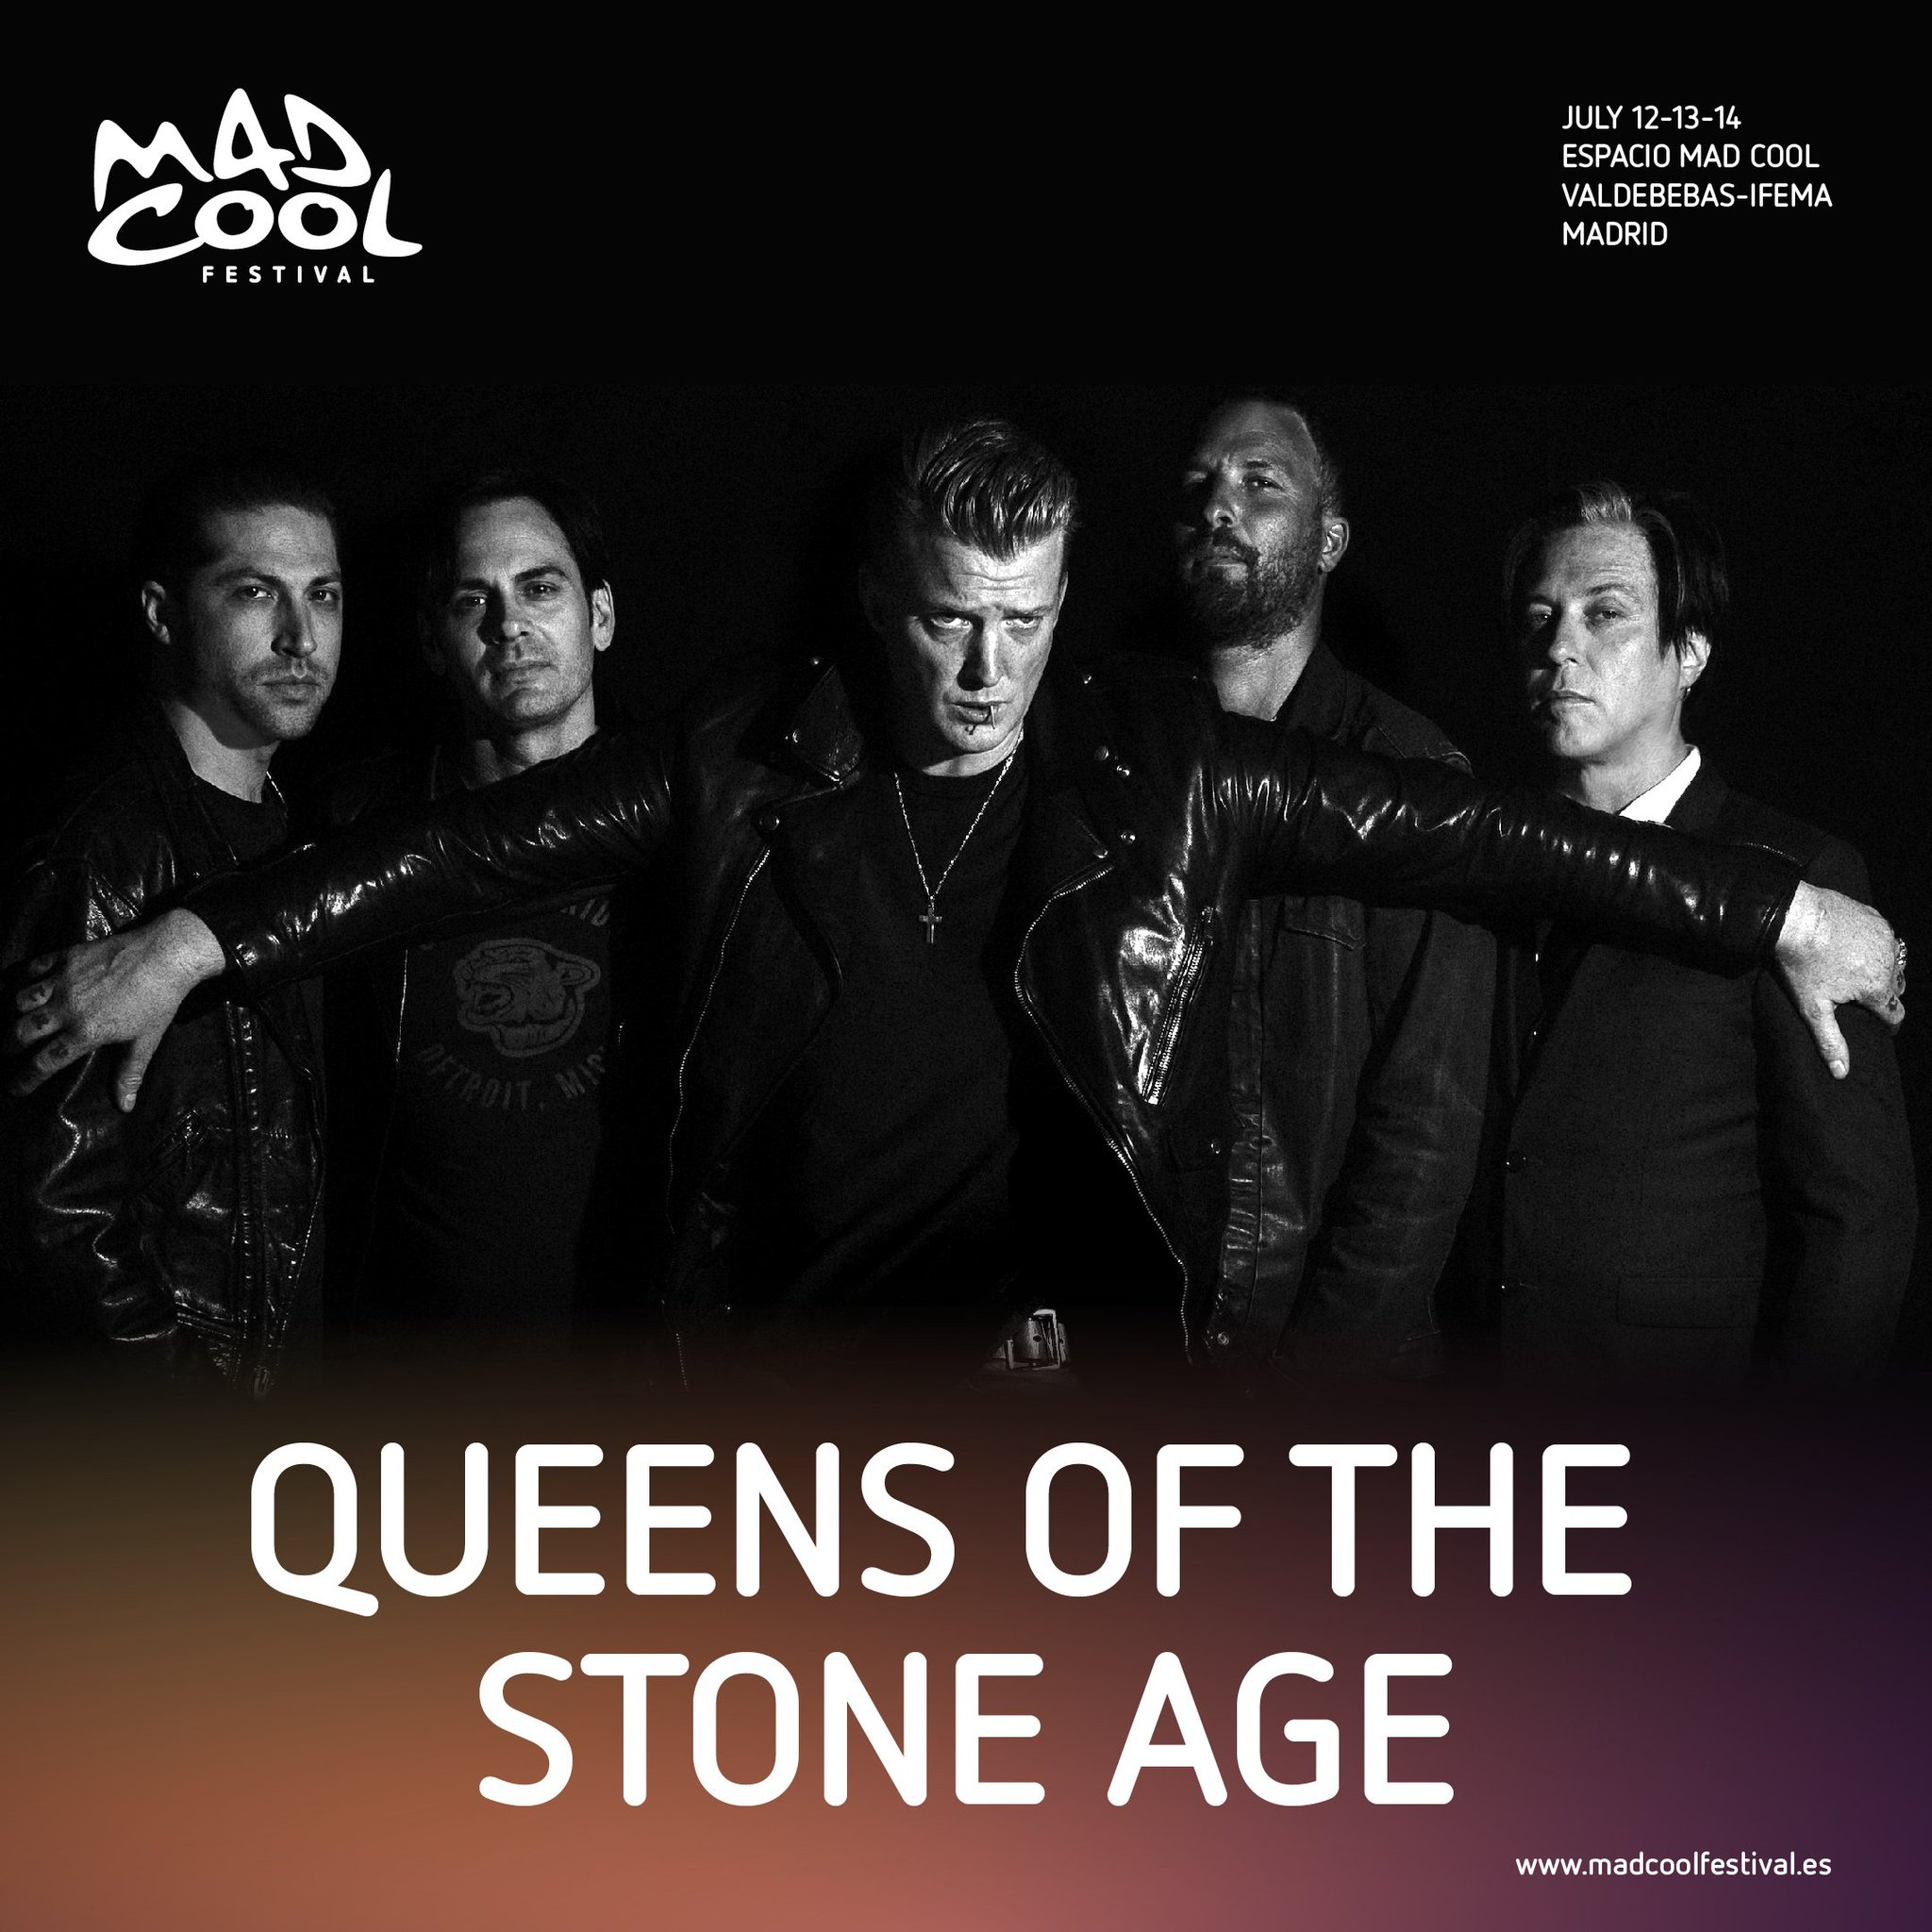 NOTICIAS QUEENS OF THE STONE AGE DOBbRpBXcAErKV0?format=jpg&name=large